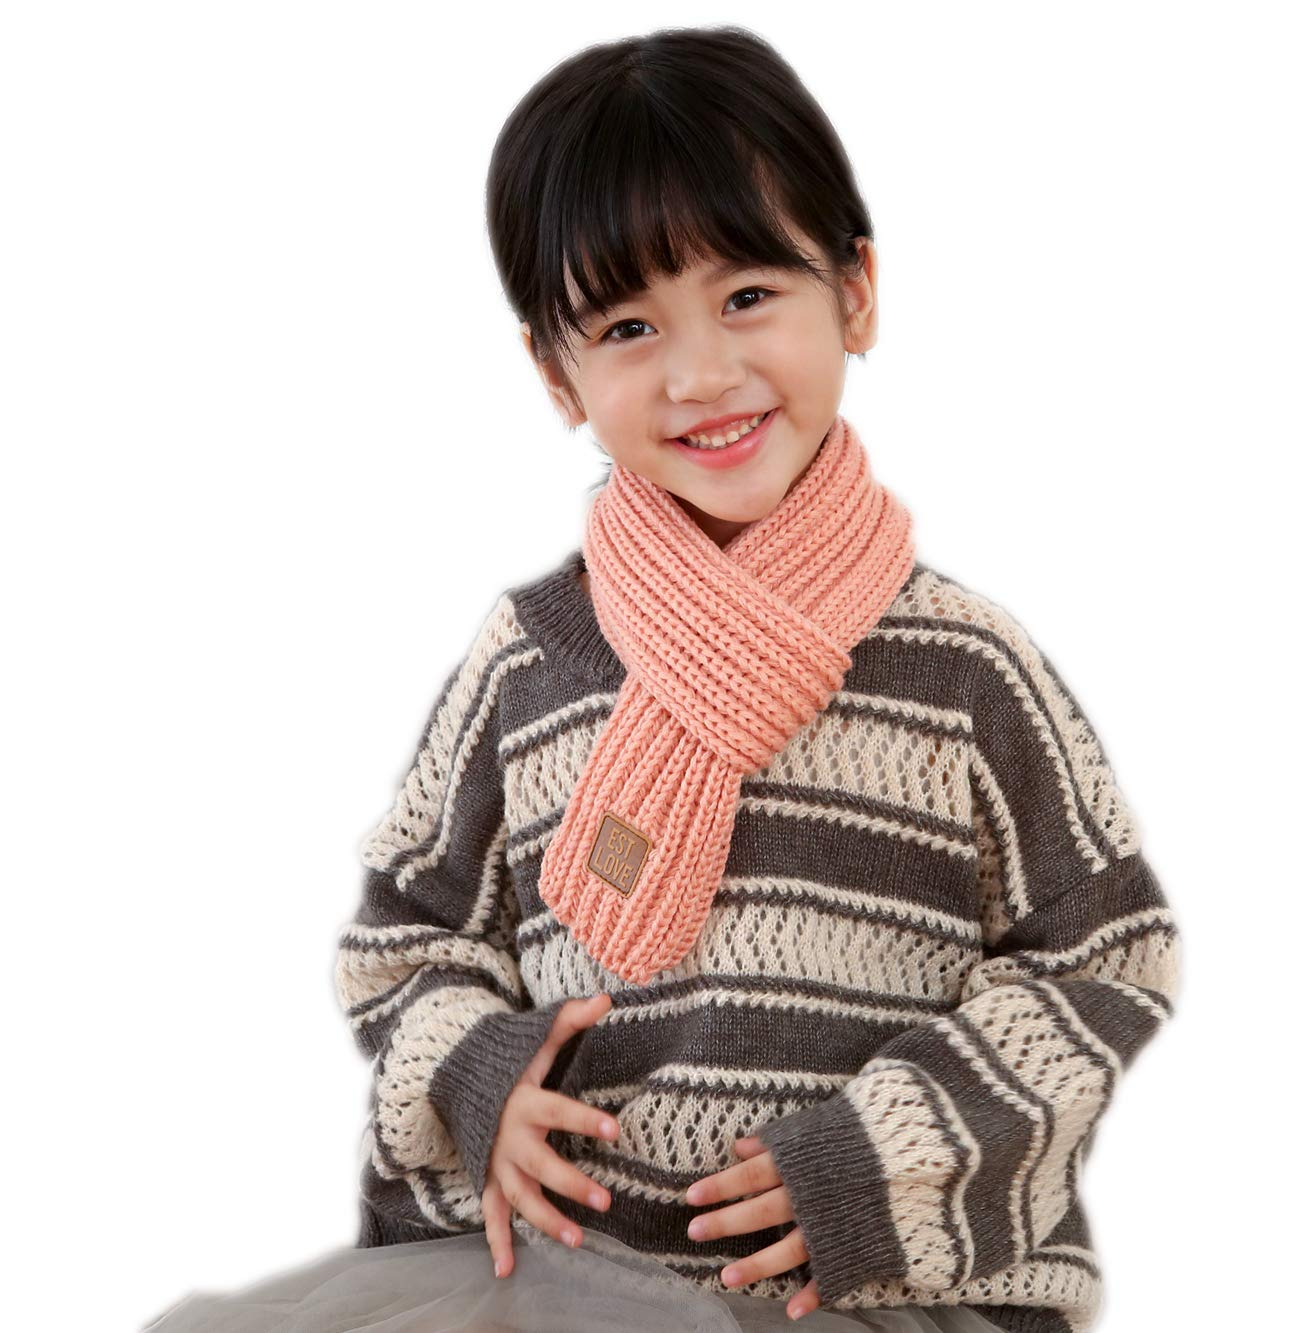 46.4 * 3.5 Unisex Kids Thick Knitted Warp Scarf Children Boys Girls Solid Color Winter Neck Warmer Shawl Light grey, one size fits for 2-6T